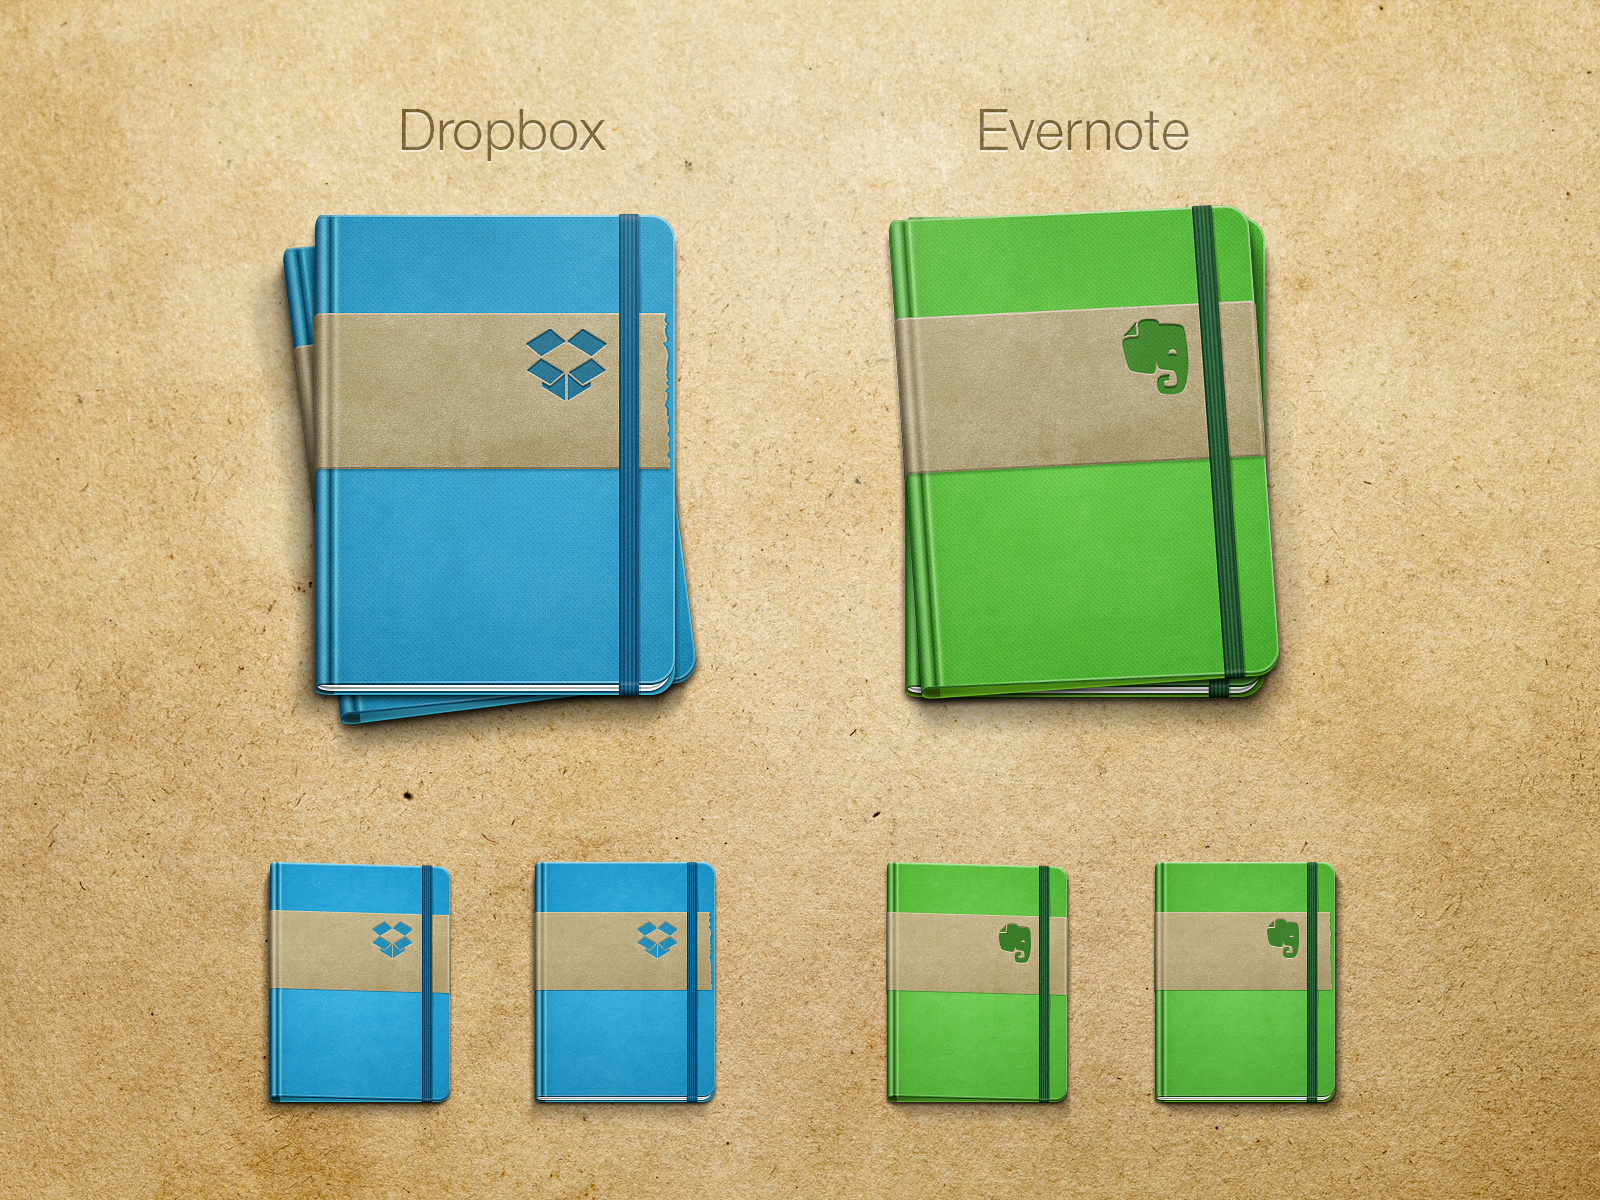 Remarks-sync-folders-full.png by JustD